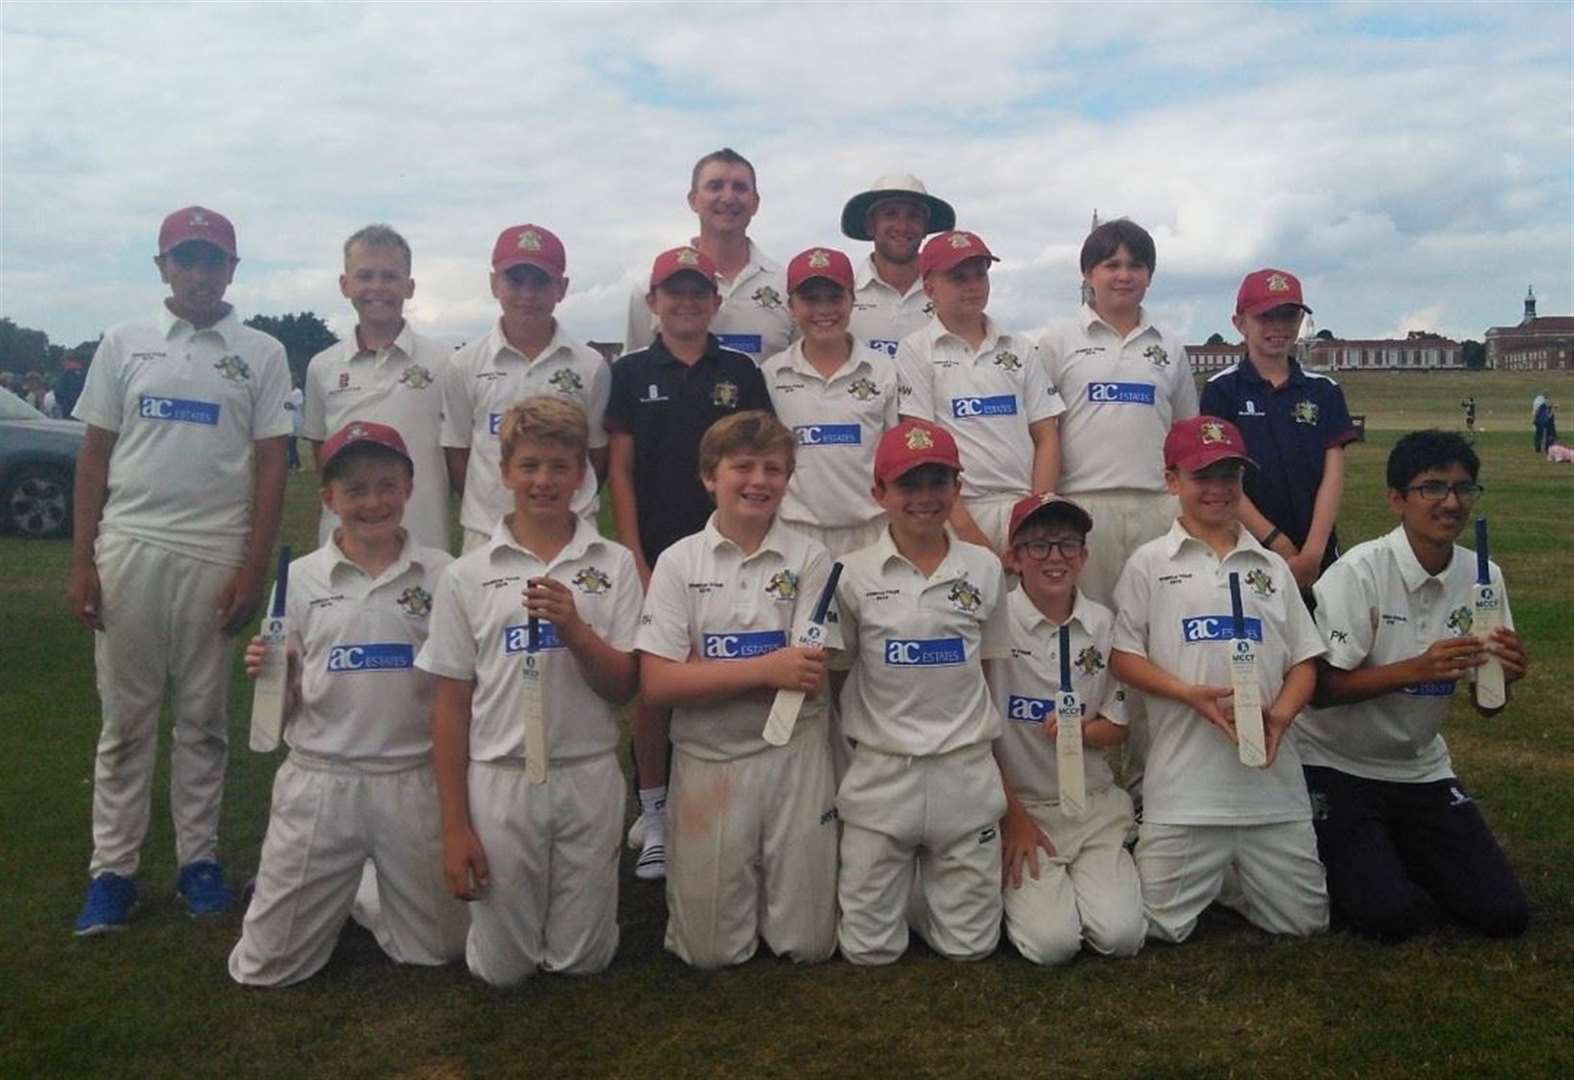 Five-star Cambridgeshire under-12s earn Minor Counties Cricket Festival glory